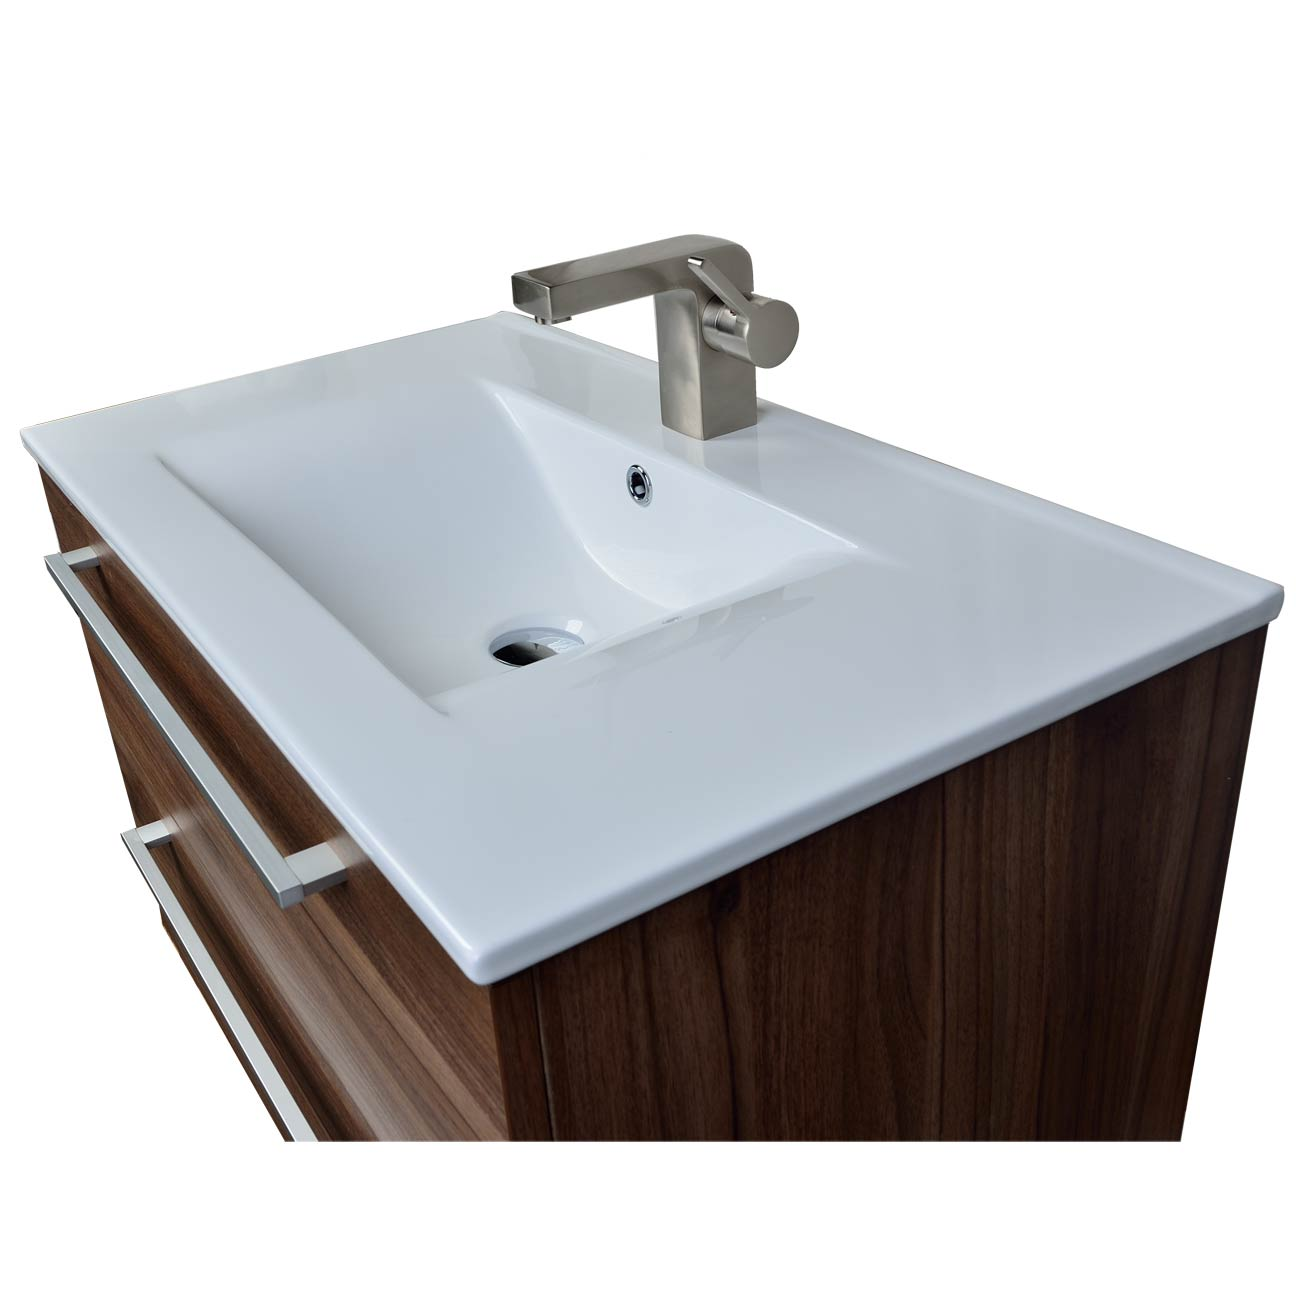 Modern wall Mount Bathroom Vanity cbi Walnut RS DM800 WNBuy 32 Inch Wall Mount Modern Bathroom Vanity Set Walnut RS DM800  . 32 Inch Bathroom Vanity. Home Design Ideas